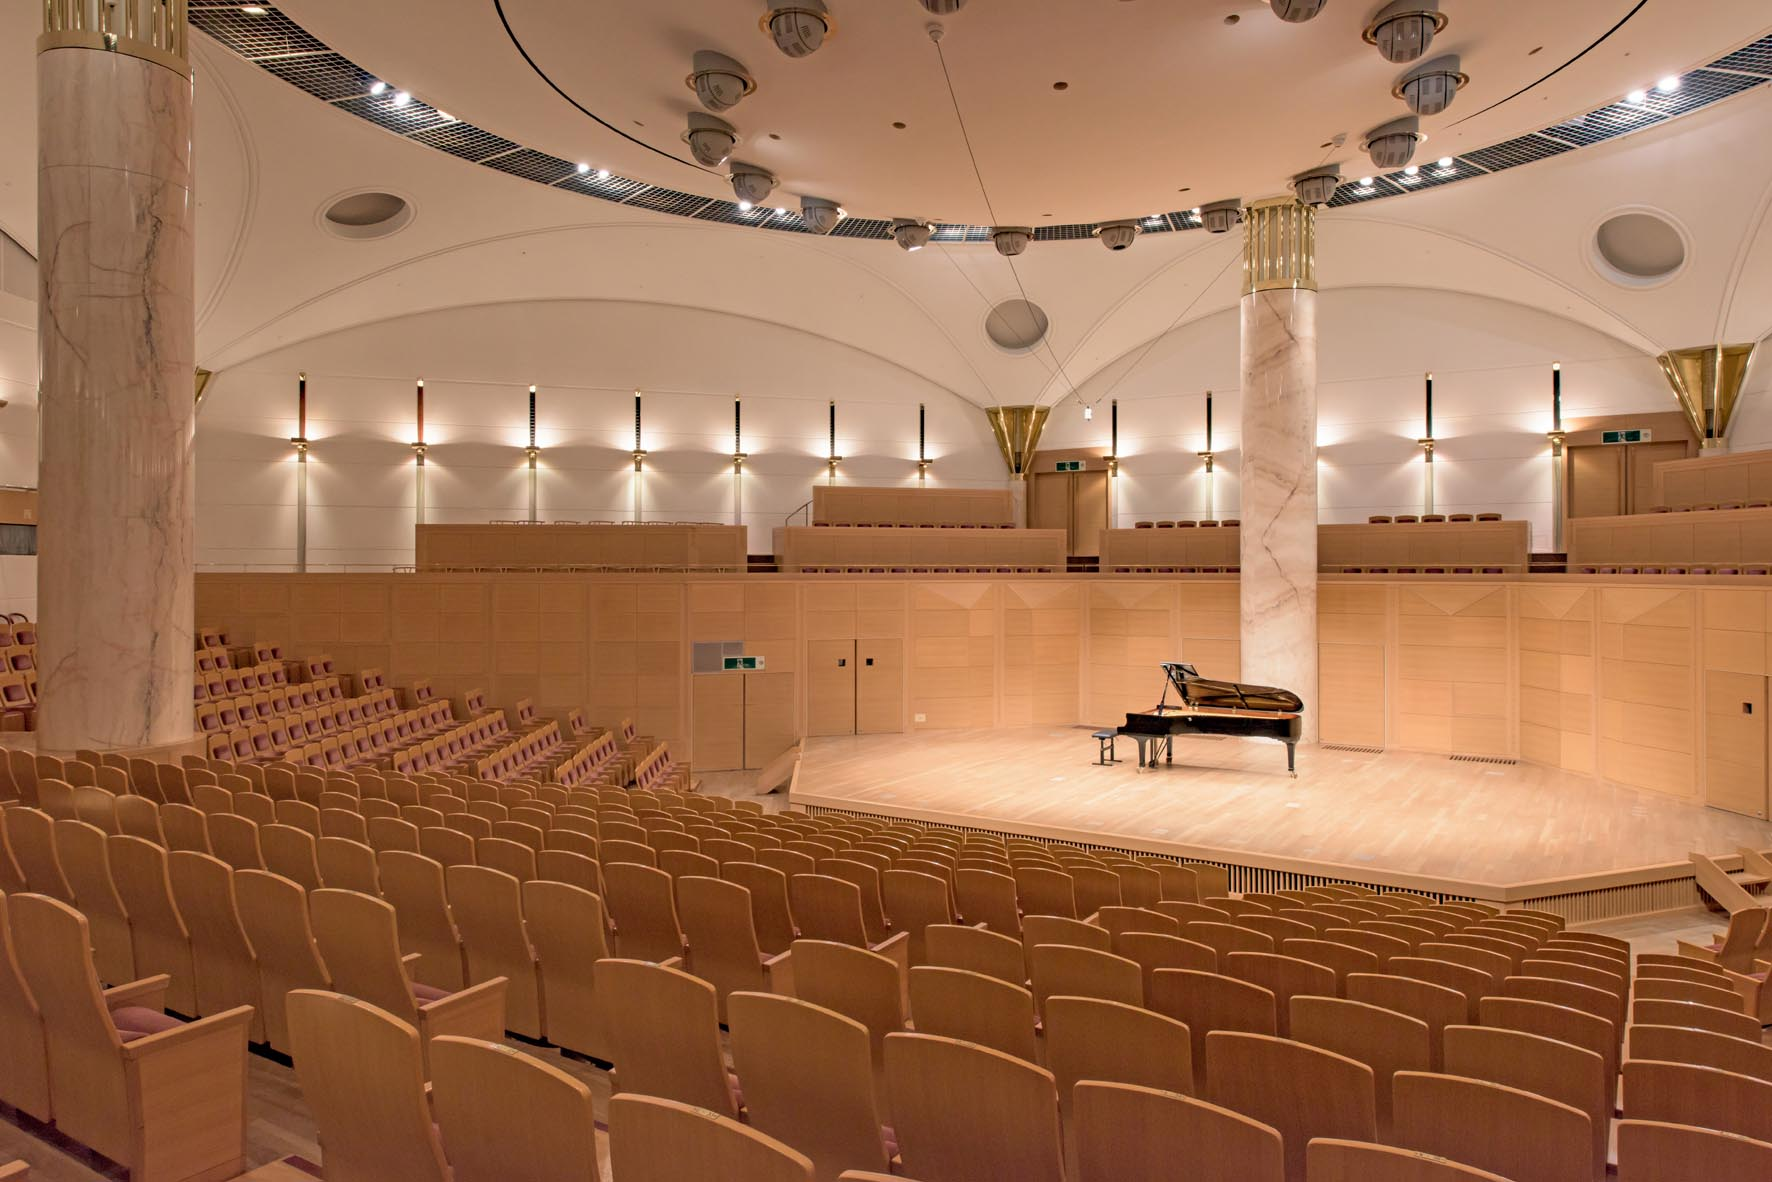 concert hall with audience seats